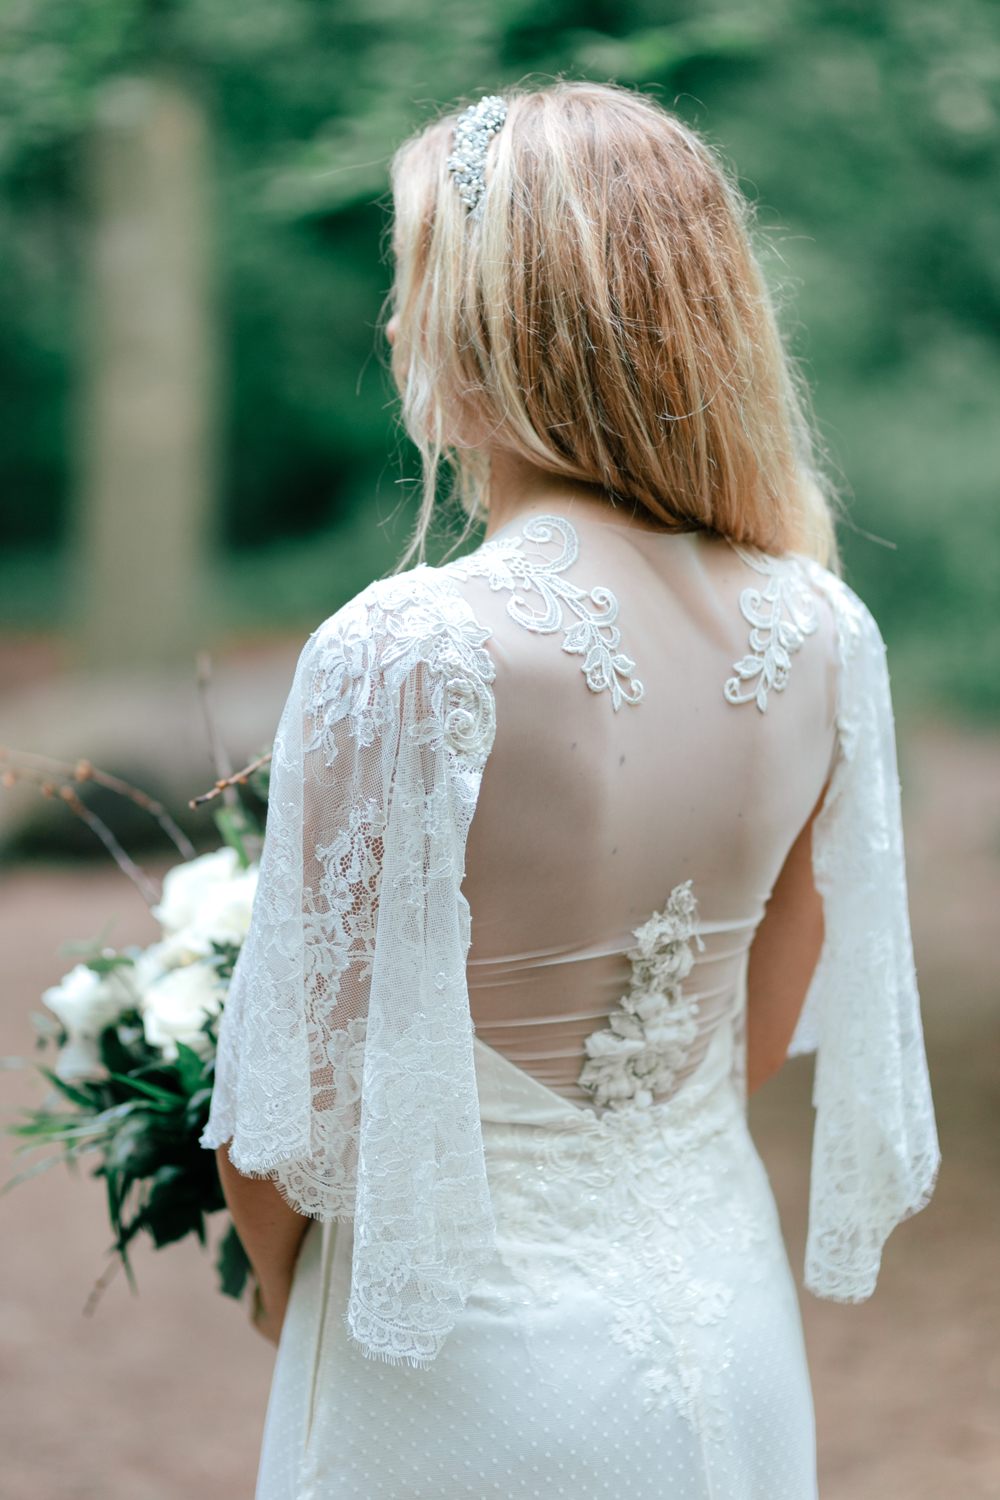 hannahk-photography-bohemian-bridal-inspiration-shoot-4